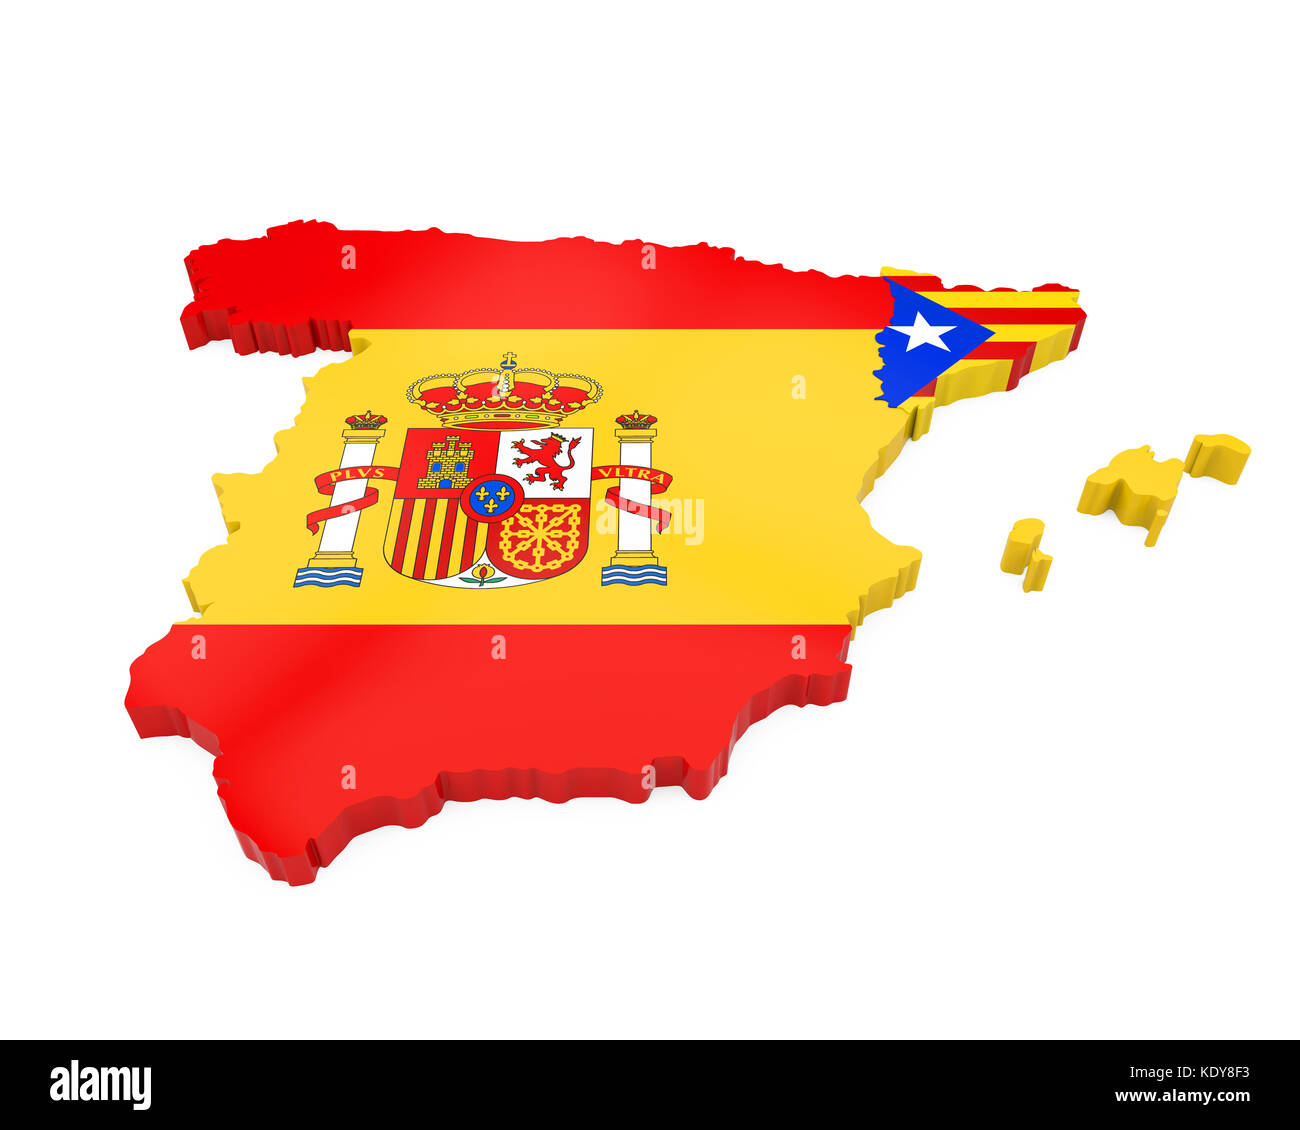 Spain And Catalonia Map Isolated Stock Photo 163483239 Alamy